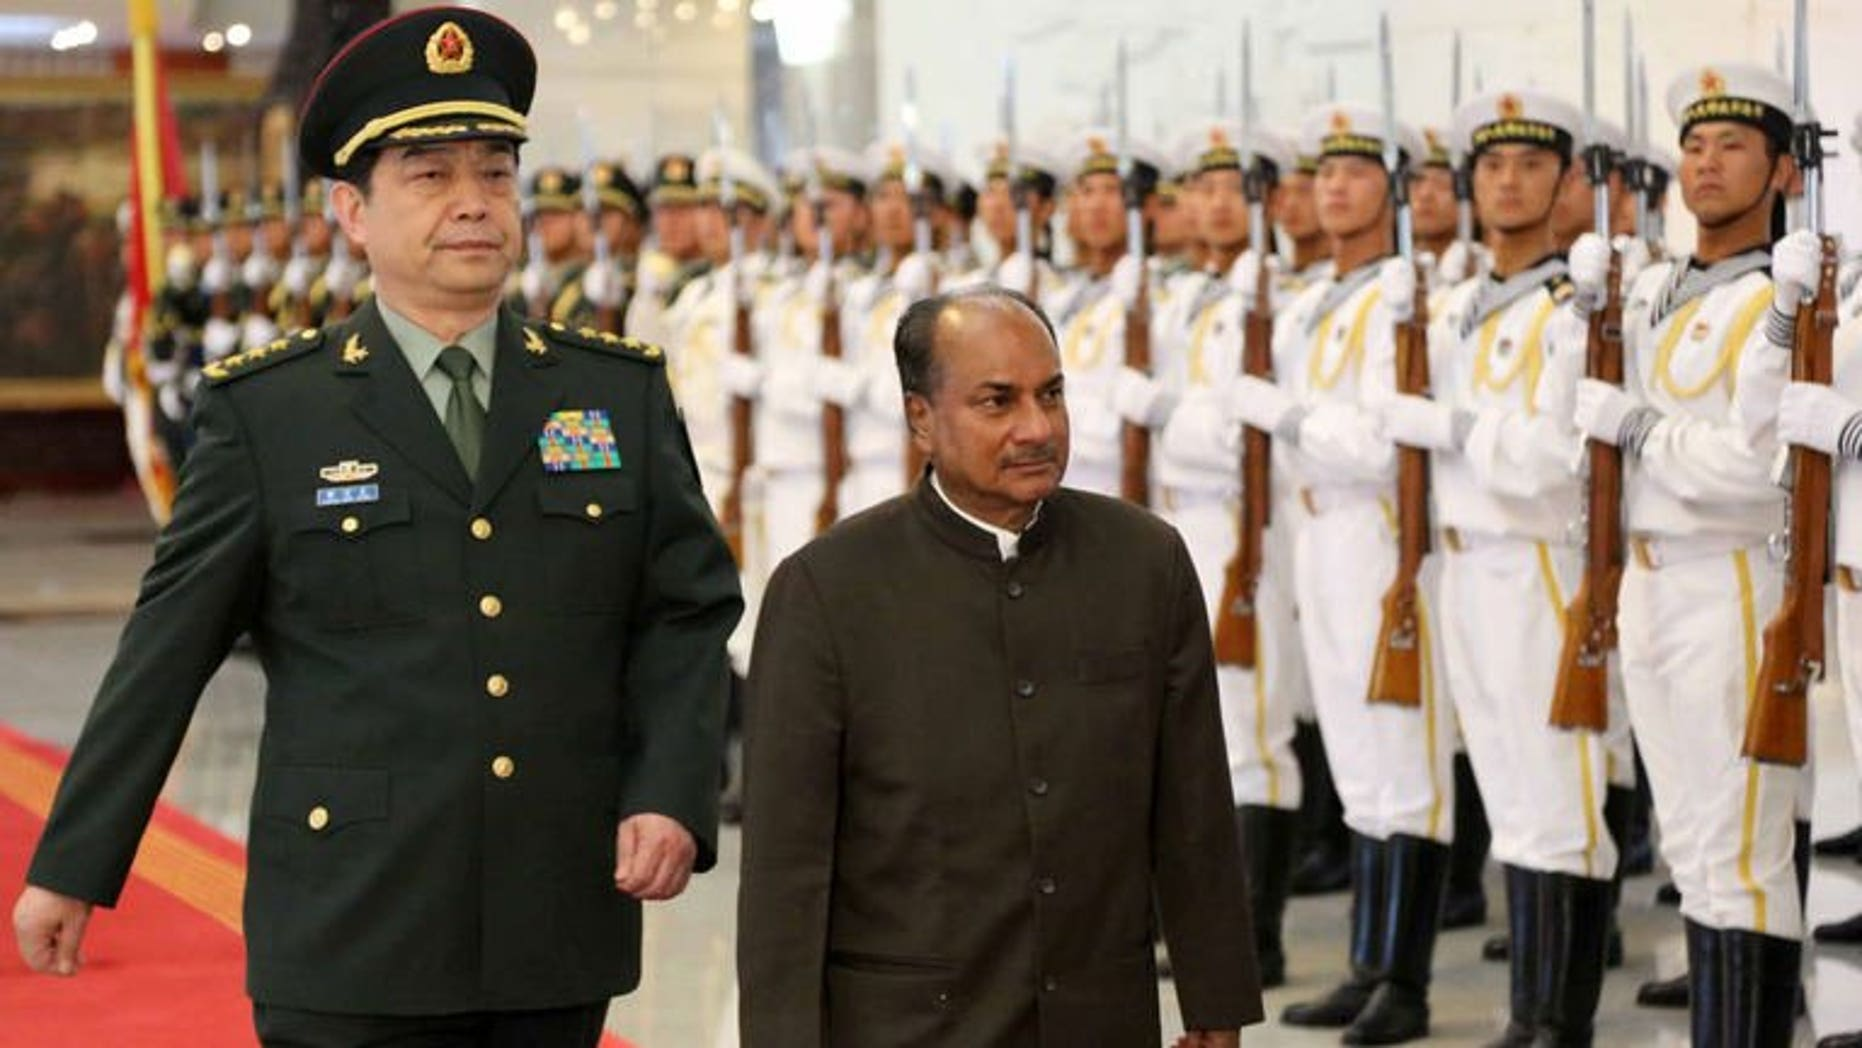 """Indian Defence Minister AK Antony (R) inspects a tri-Services guard of honour with his Chinese counterpart, General Chang Wanquan in Beijing on July 5, 2013. The Chinese and Indian defence chiefs agreed Saturday to strengthen """"peace and tranquility"""" along their frontier, state media reported, as the countries work to keep tensions in a disputed border area in check."""